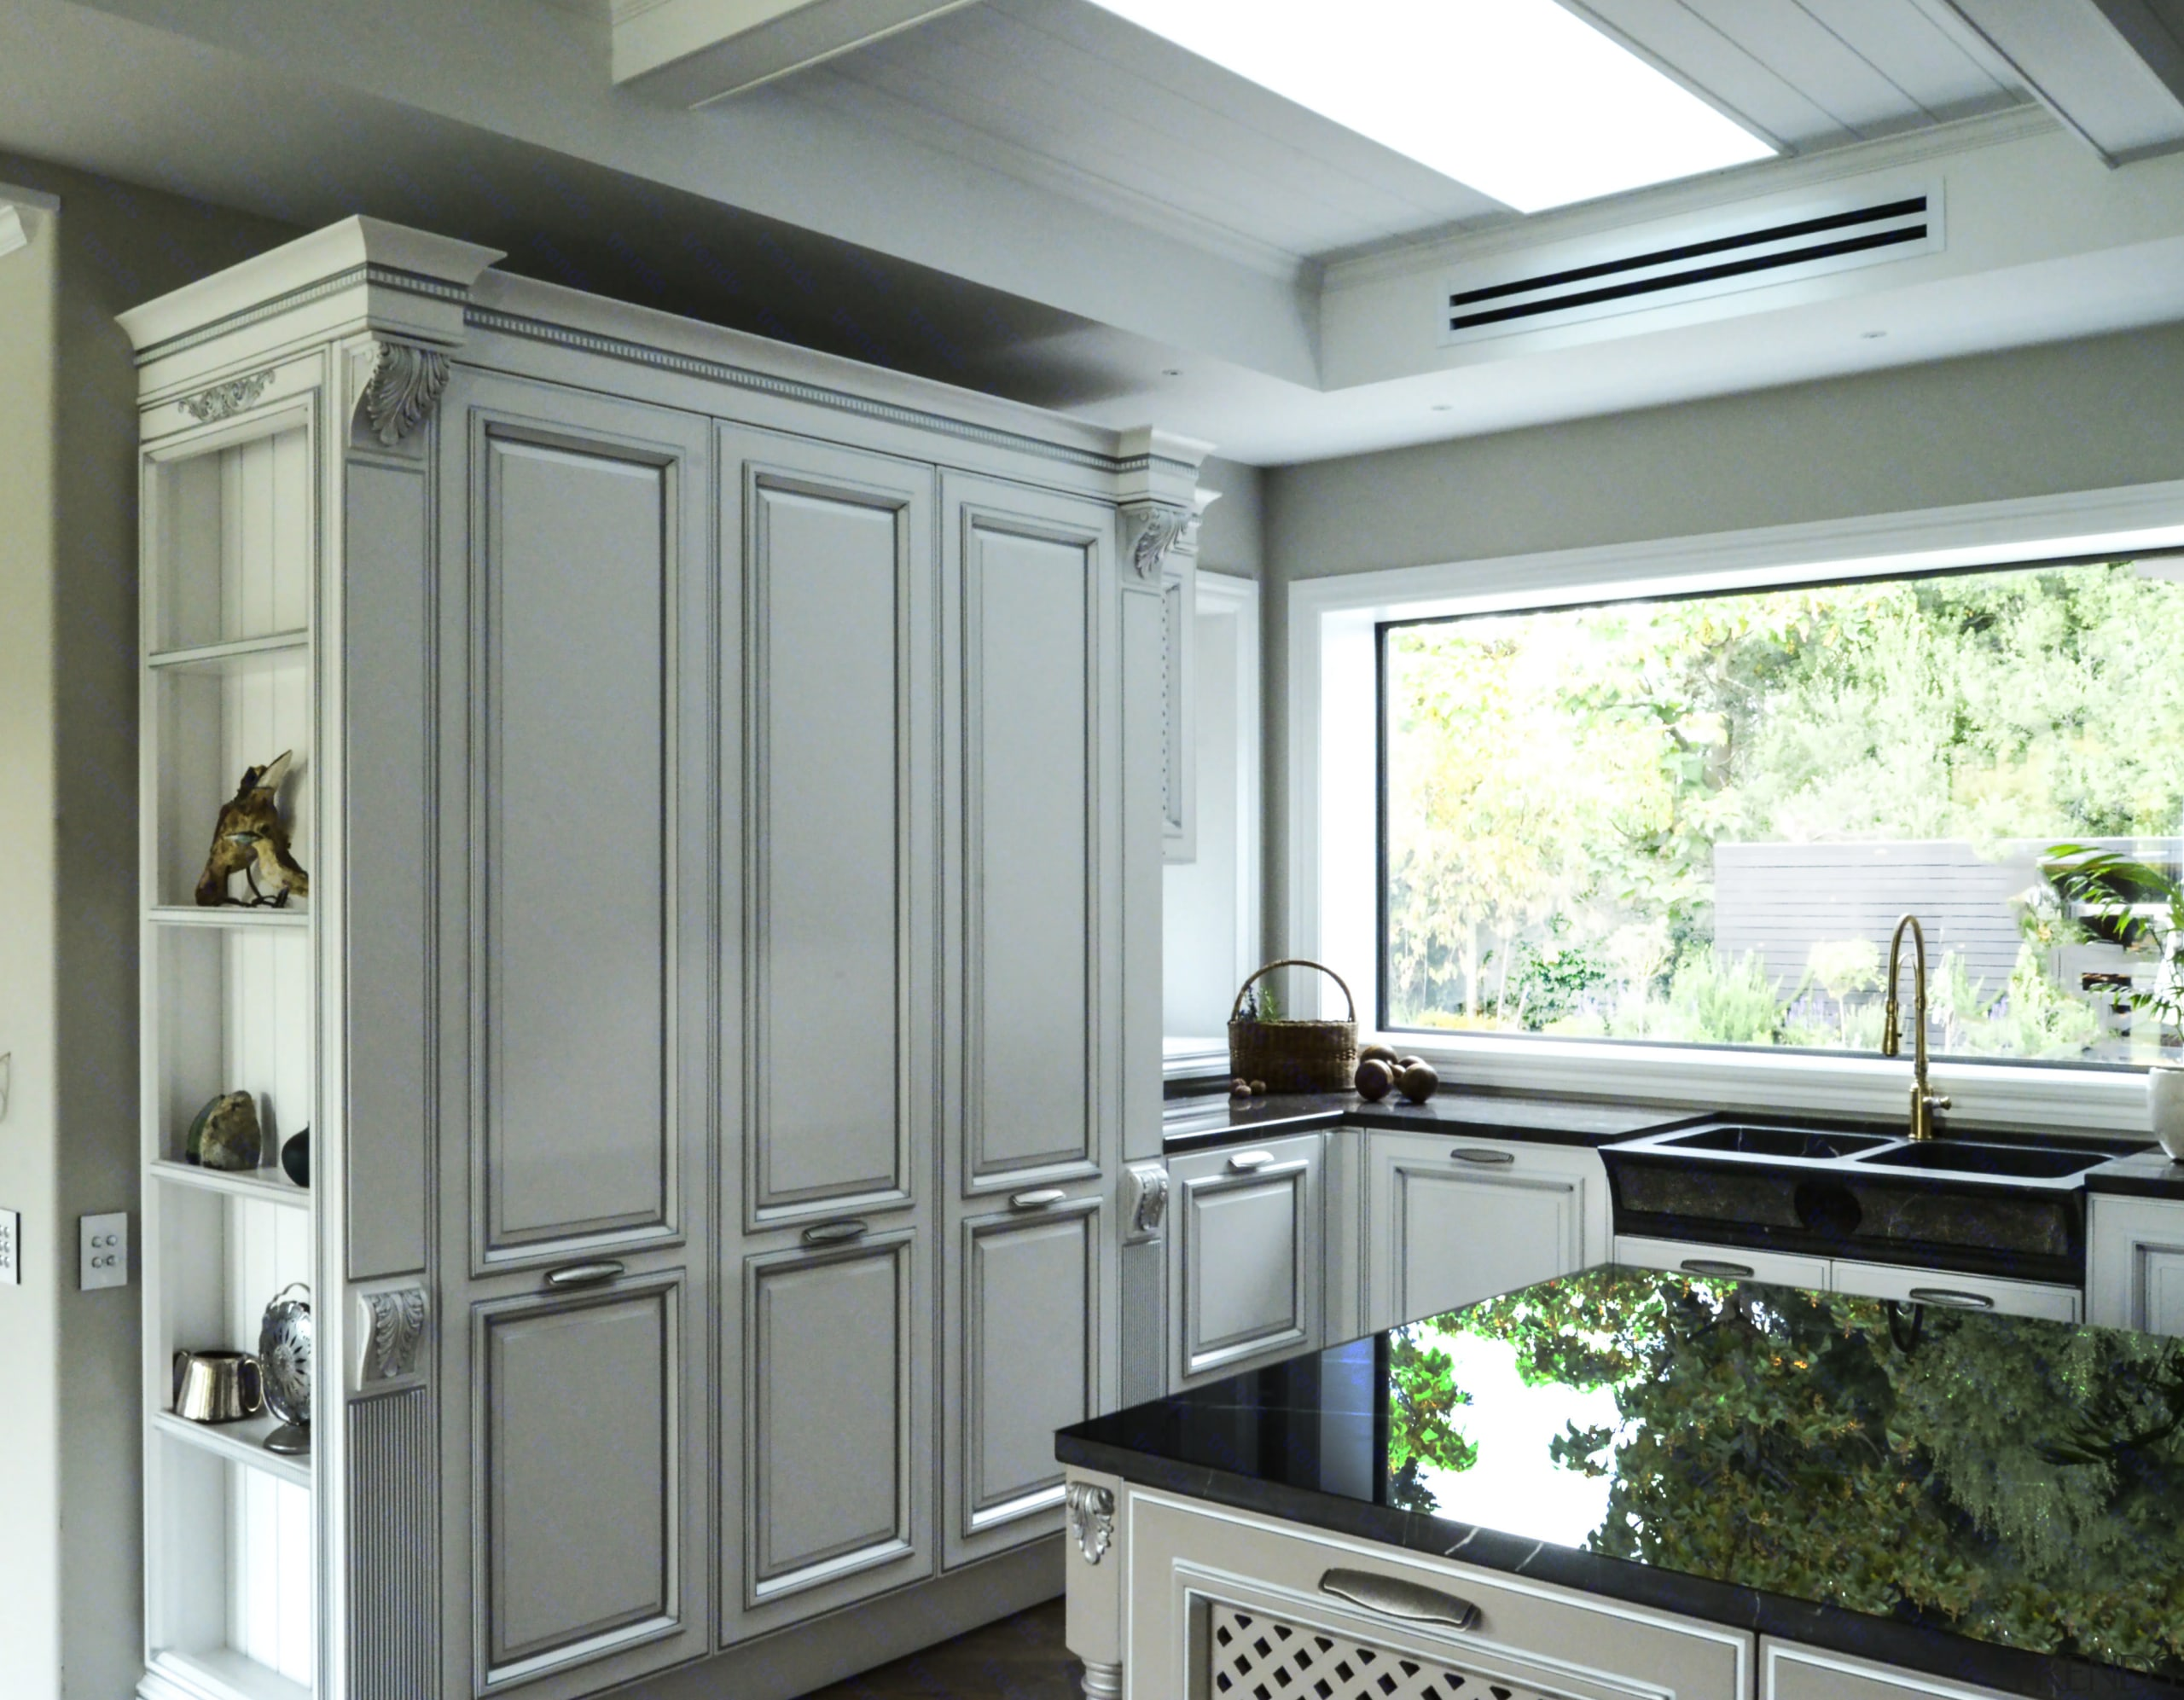 Trends] | While this large kitchen\'s panelled cabinet style is ...